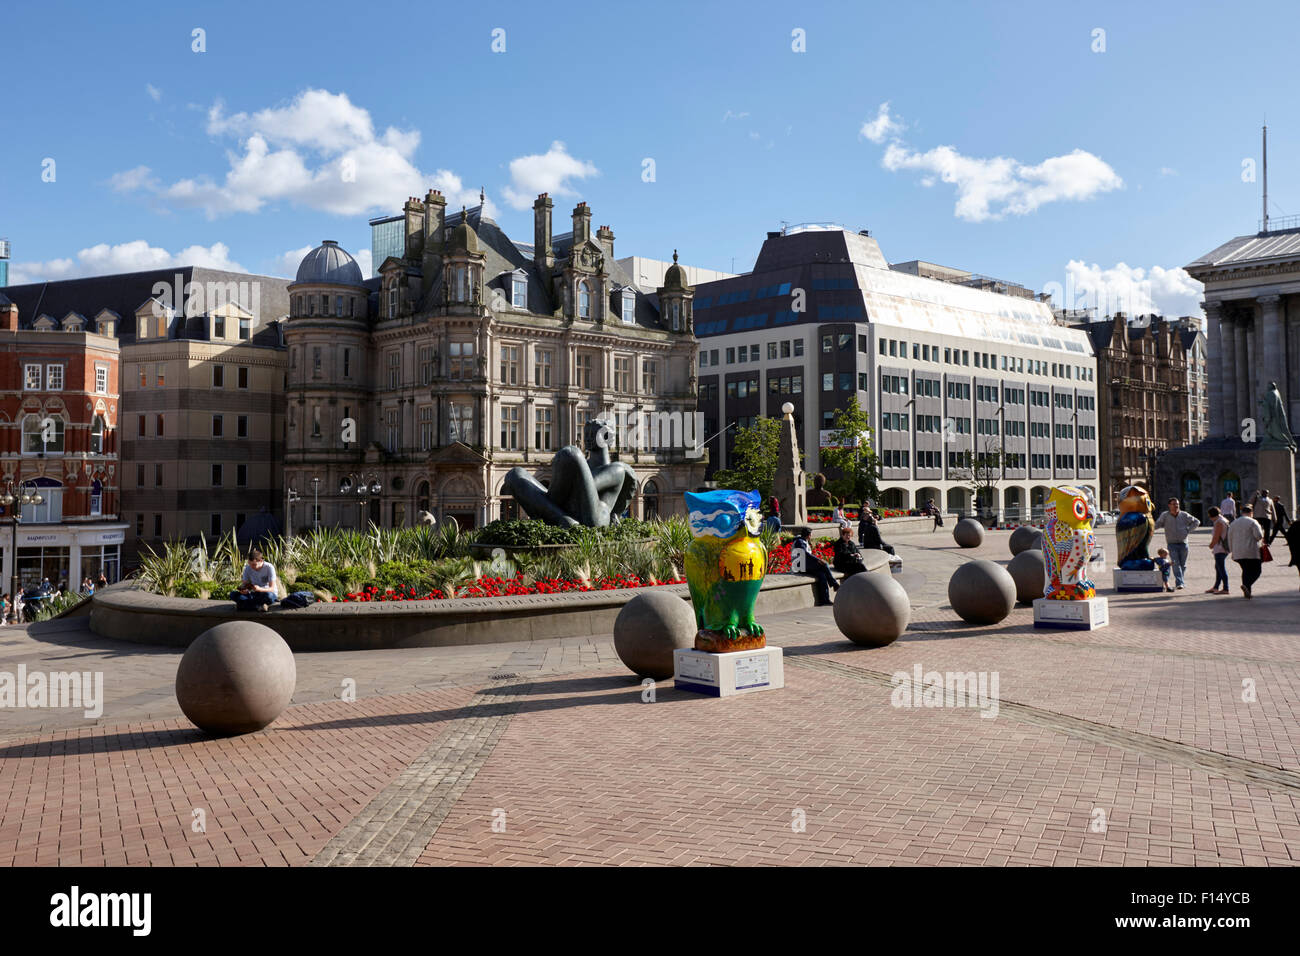 river sculpture in Victoria Square Birmingham city centre UK - Stock Image